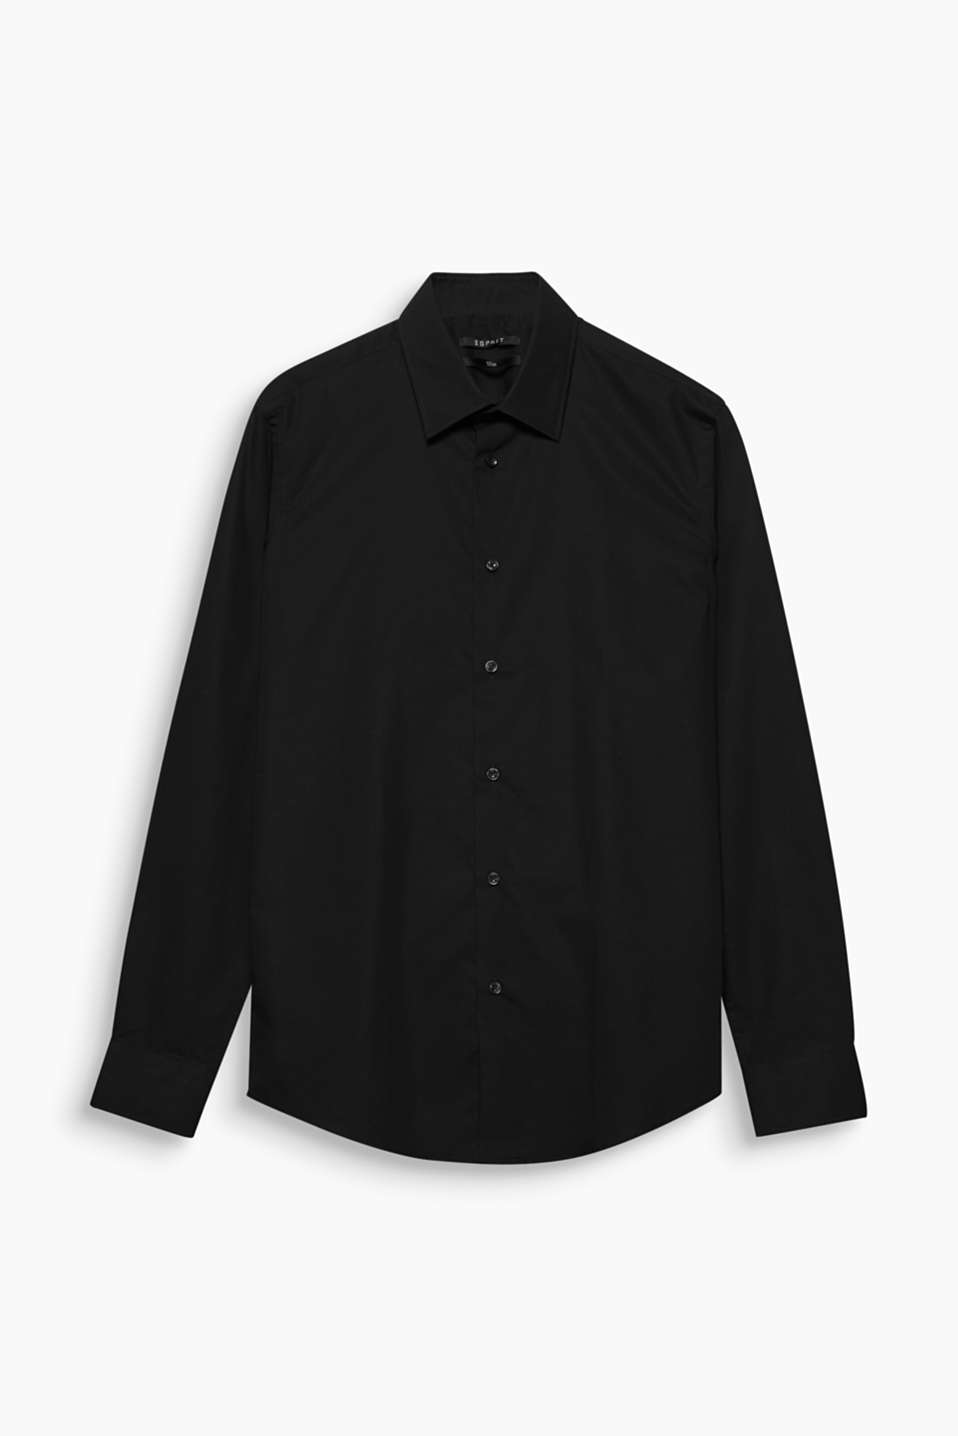 easy-iron business shirt made from pure cotton